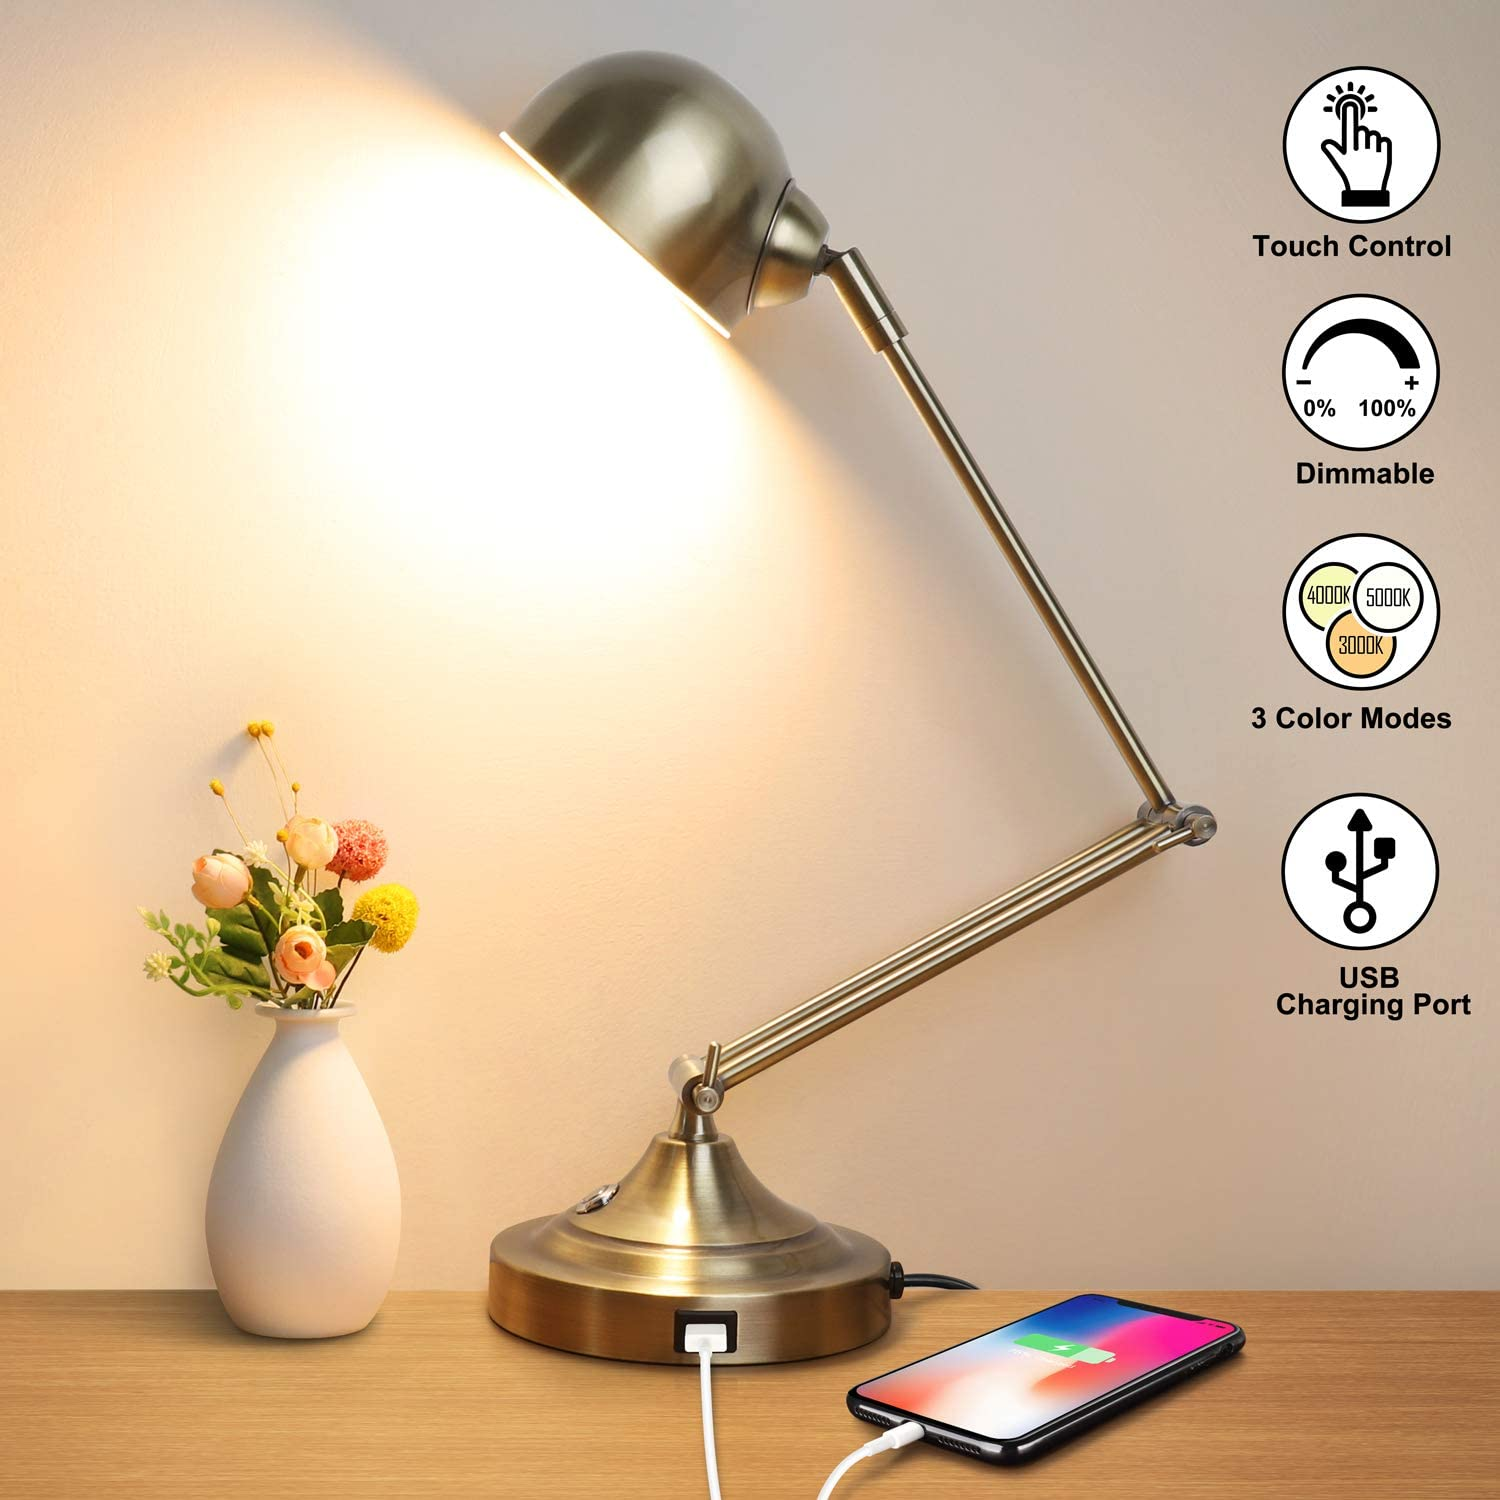 LED Desk Lamp with USB Charging Port, Swing Arm, Fully Dimmable, 3 Color Modes, Eye-Caring Task Lamp, Touch Control Brass Metal Architect Drafting Table Lamp for Bedside, Office, Work, Reading -Memory